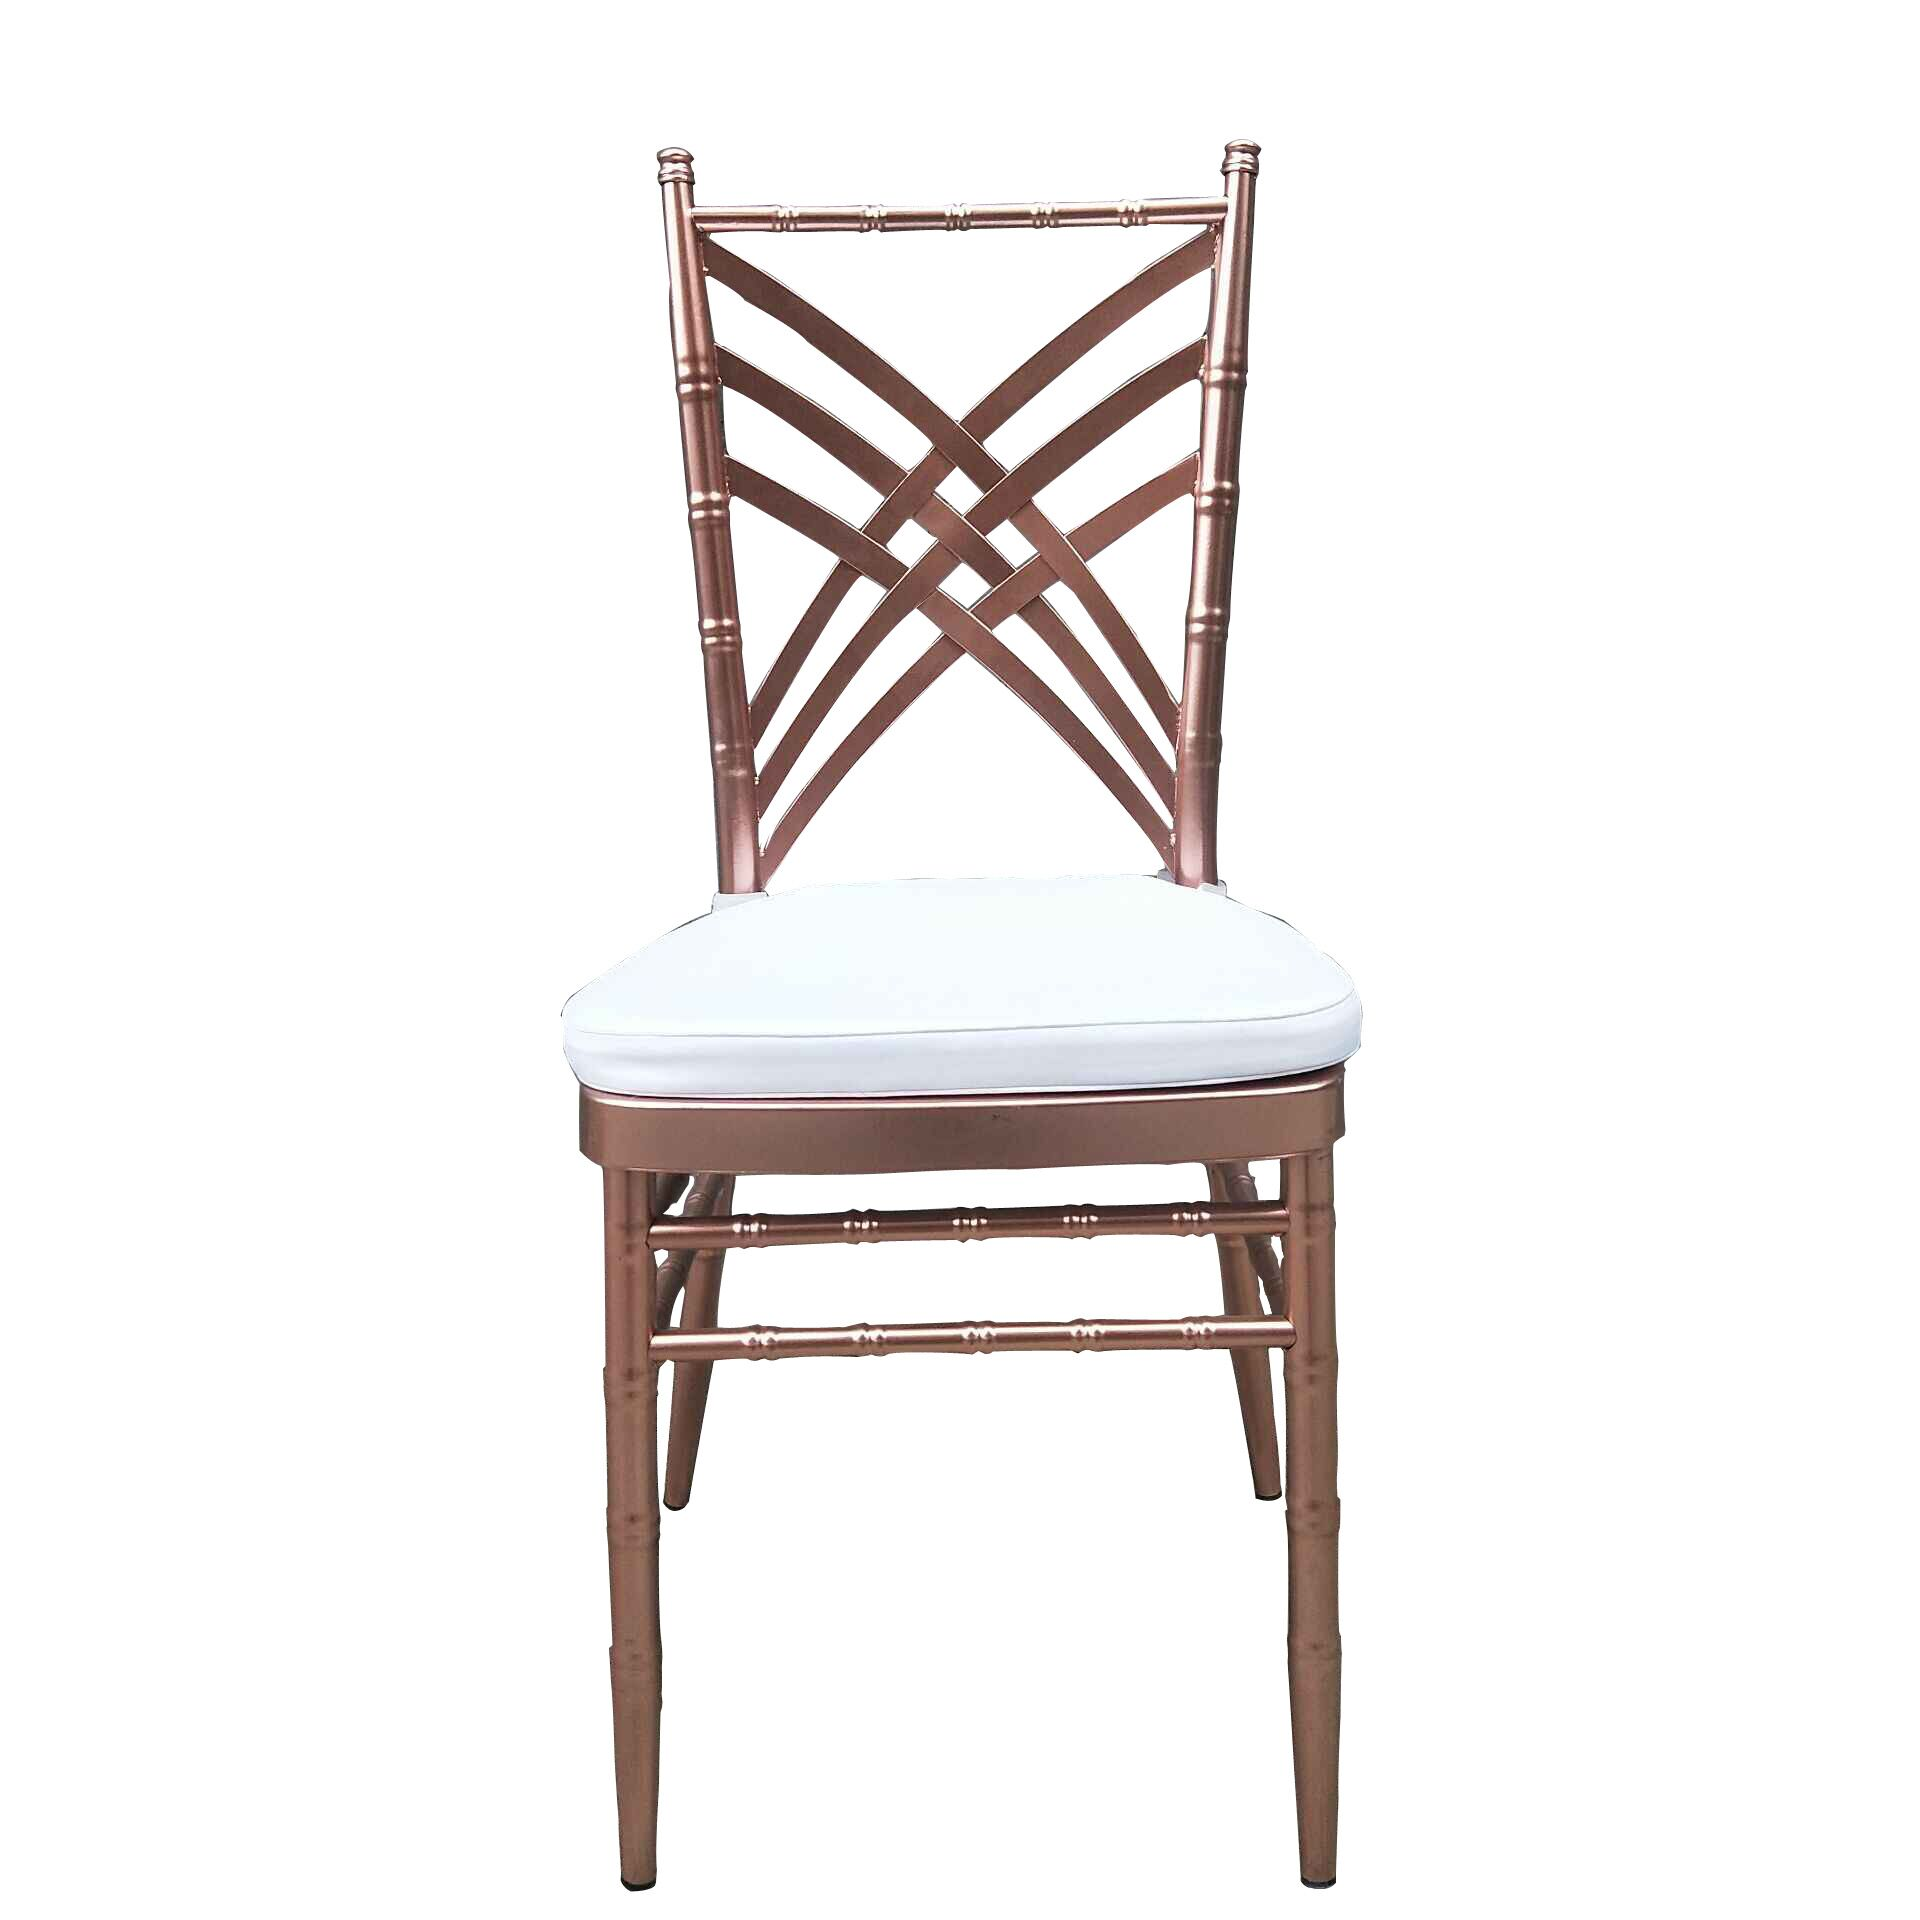 Cheapest Price Bleacher Chairs Stadium Seats -